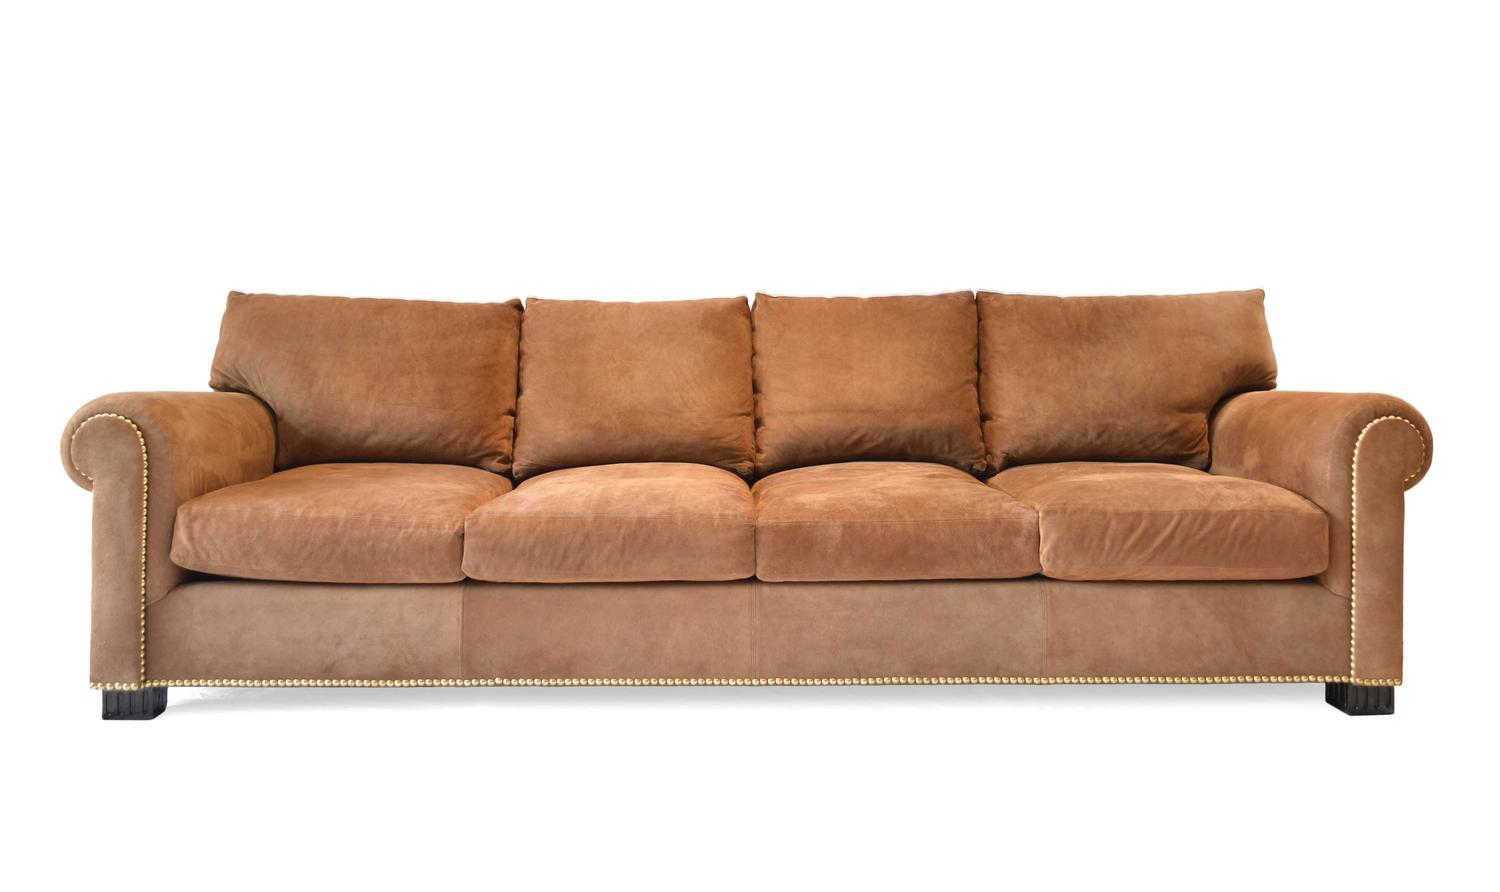 suede rolled arm sofa by ralph lauren for sale at 1stdibs ForSuede Furniture